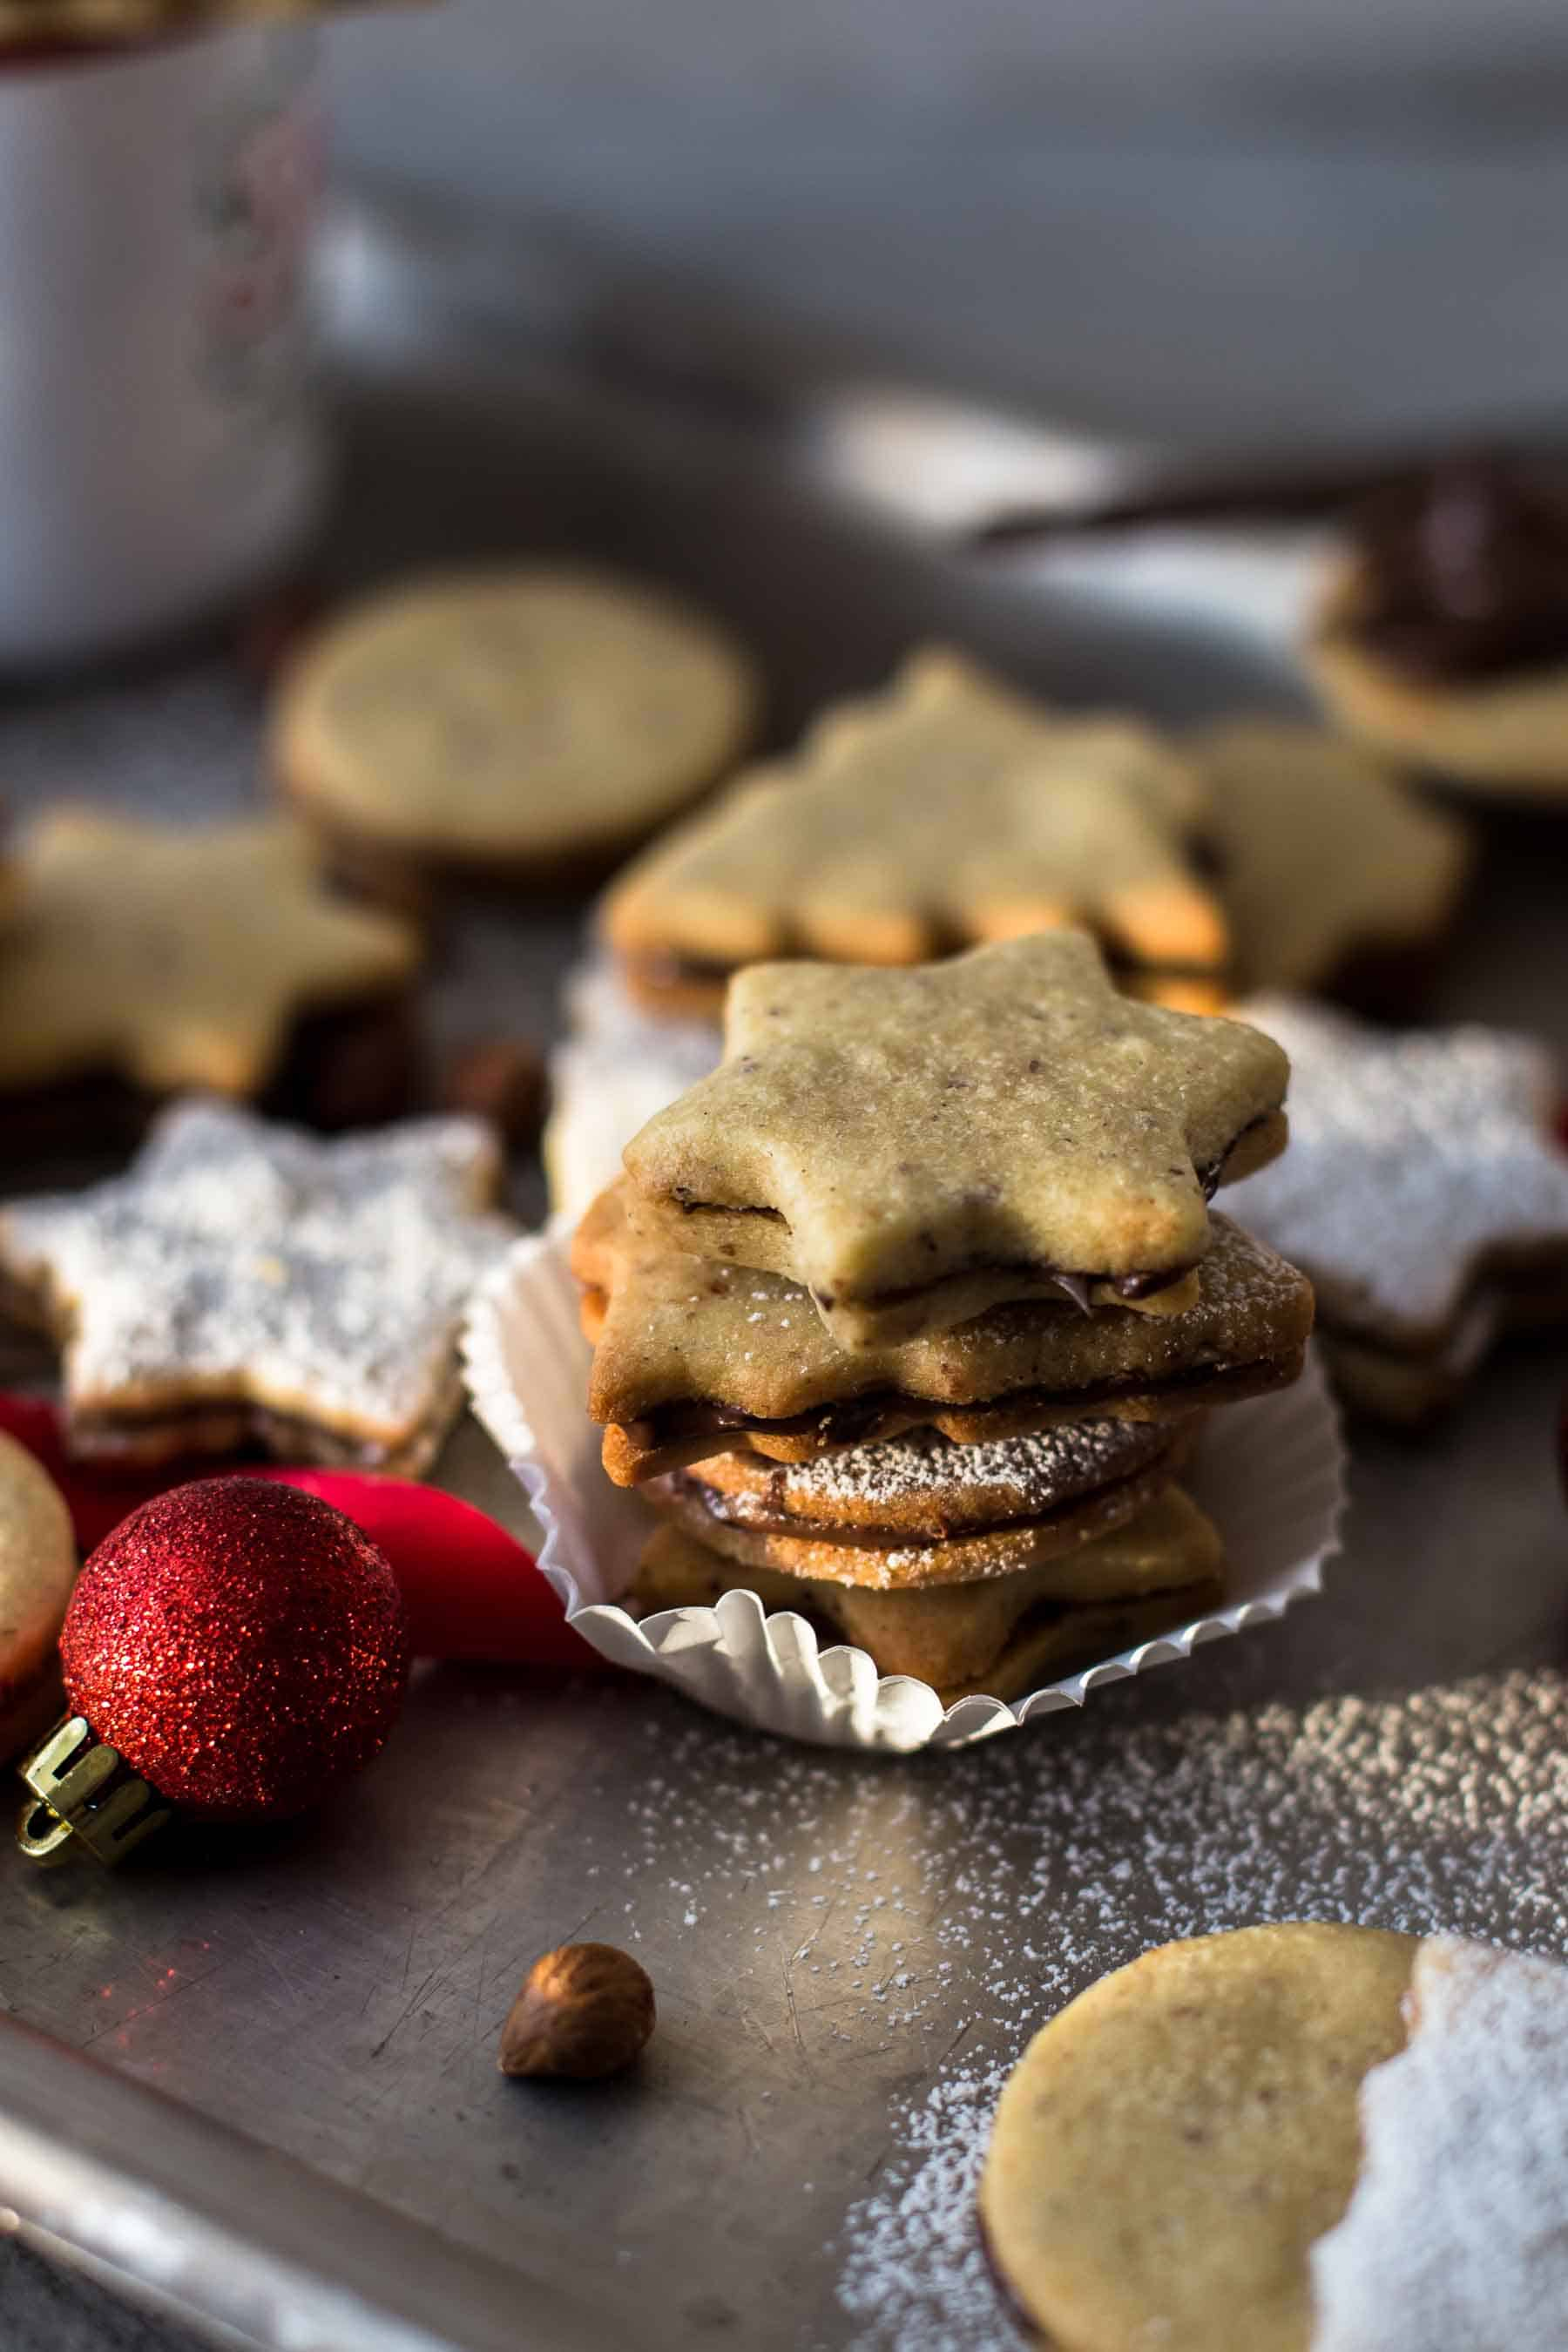 Baked Chocolate Hazelnut Cookies with powdered sugar